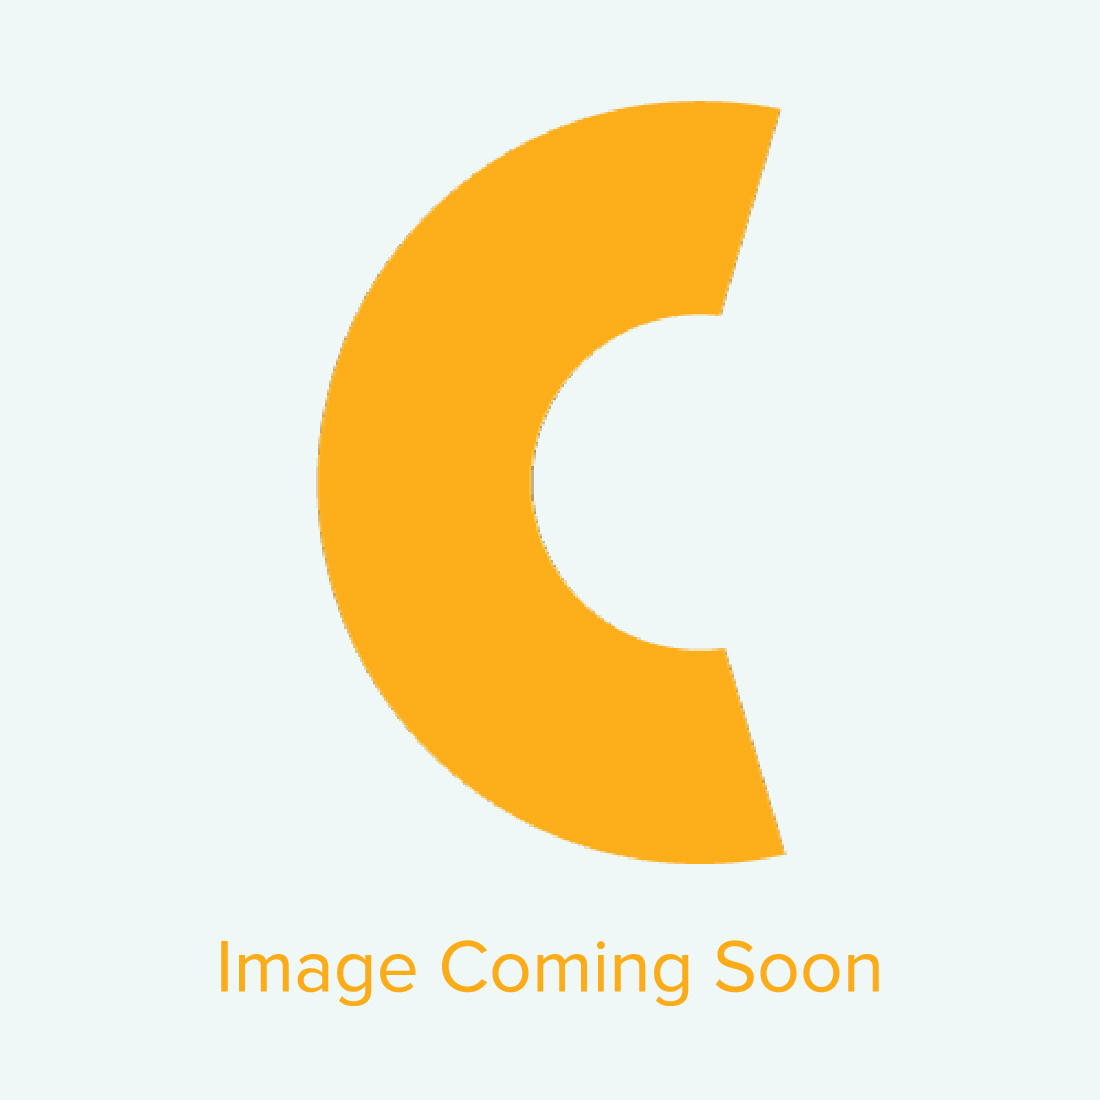 Sublimation 16 oz. Travel Mug with Lid + Handle